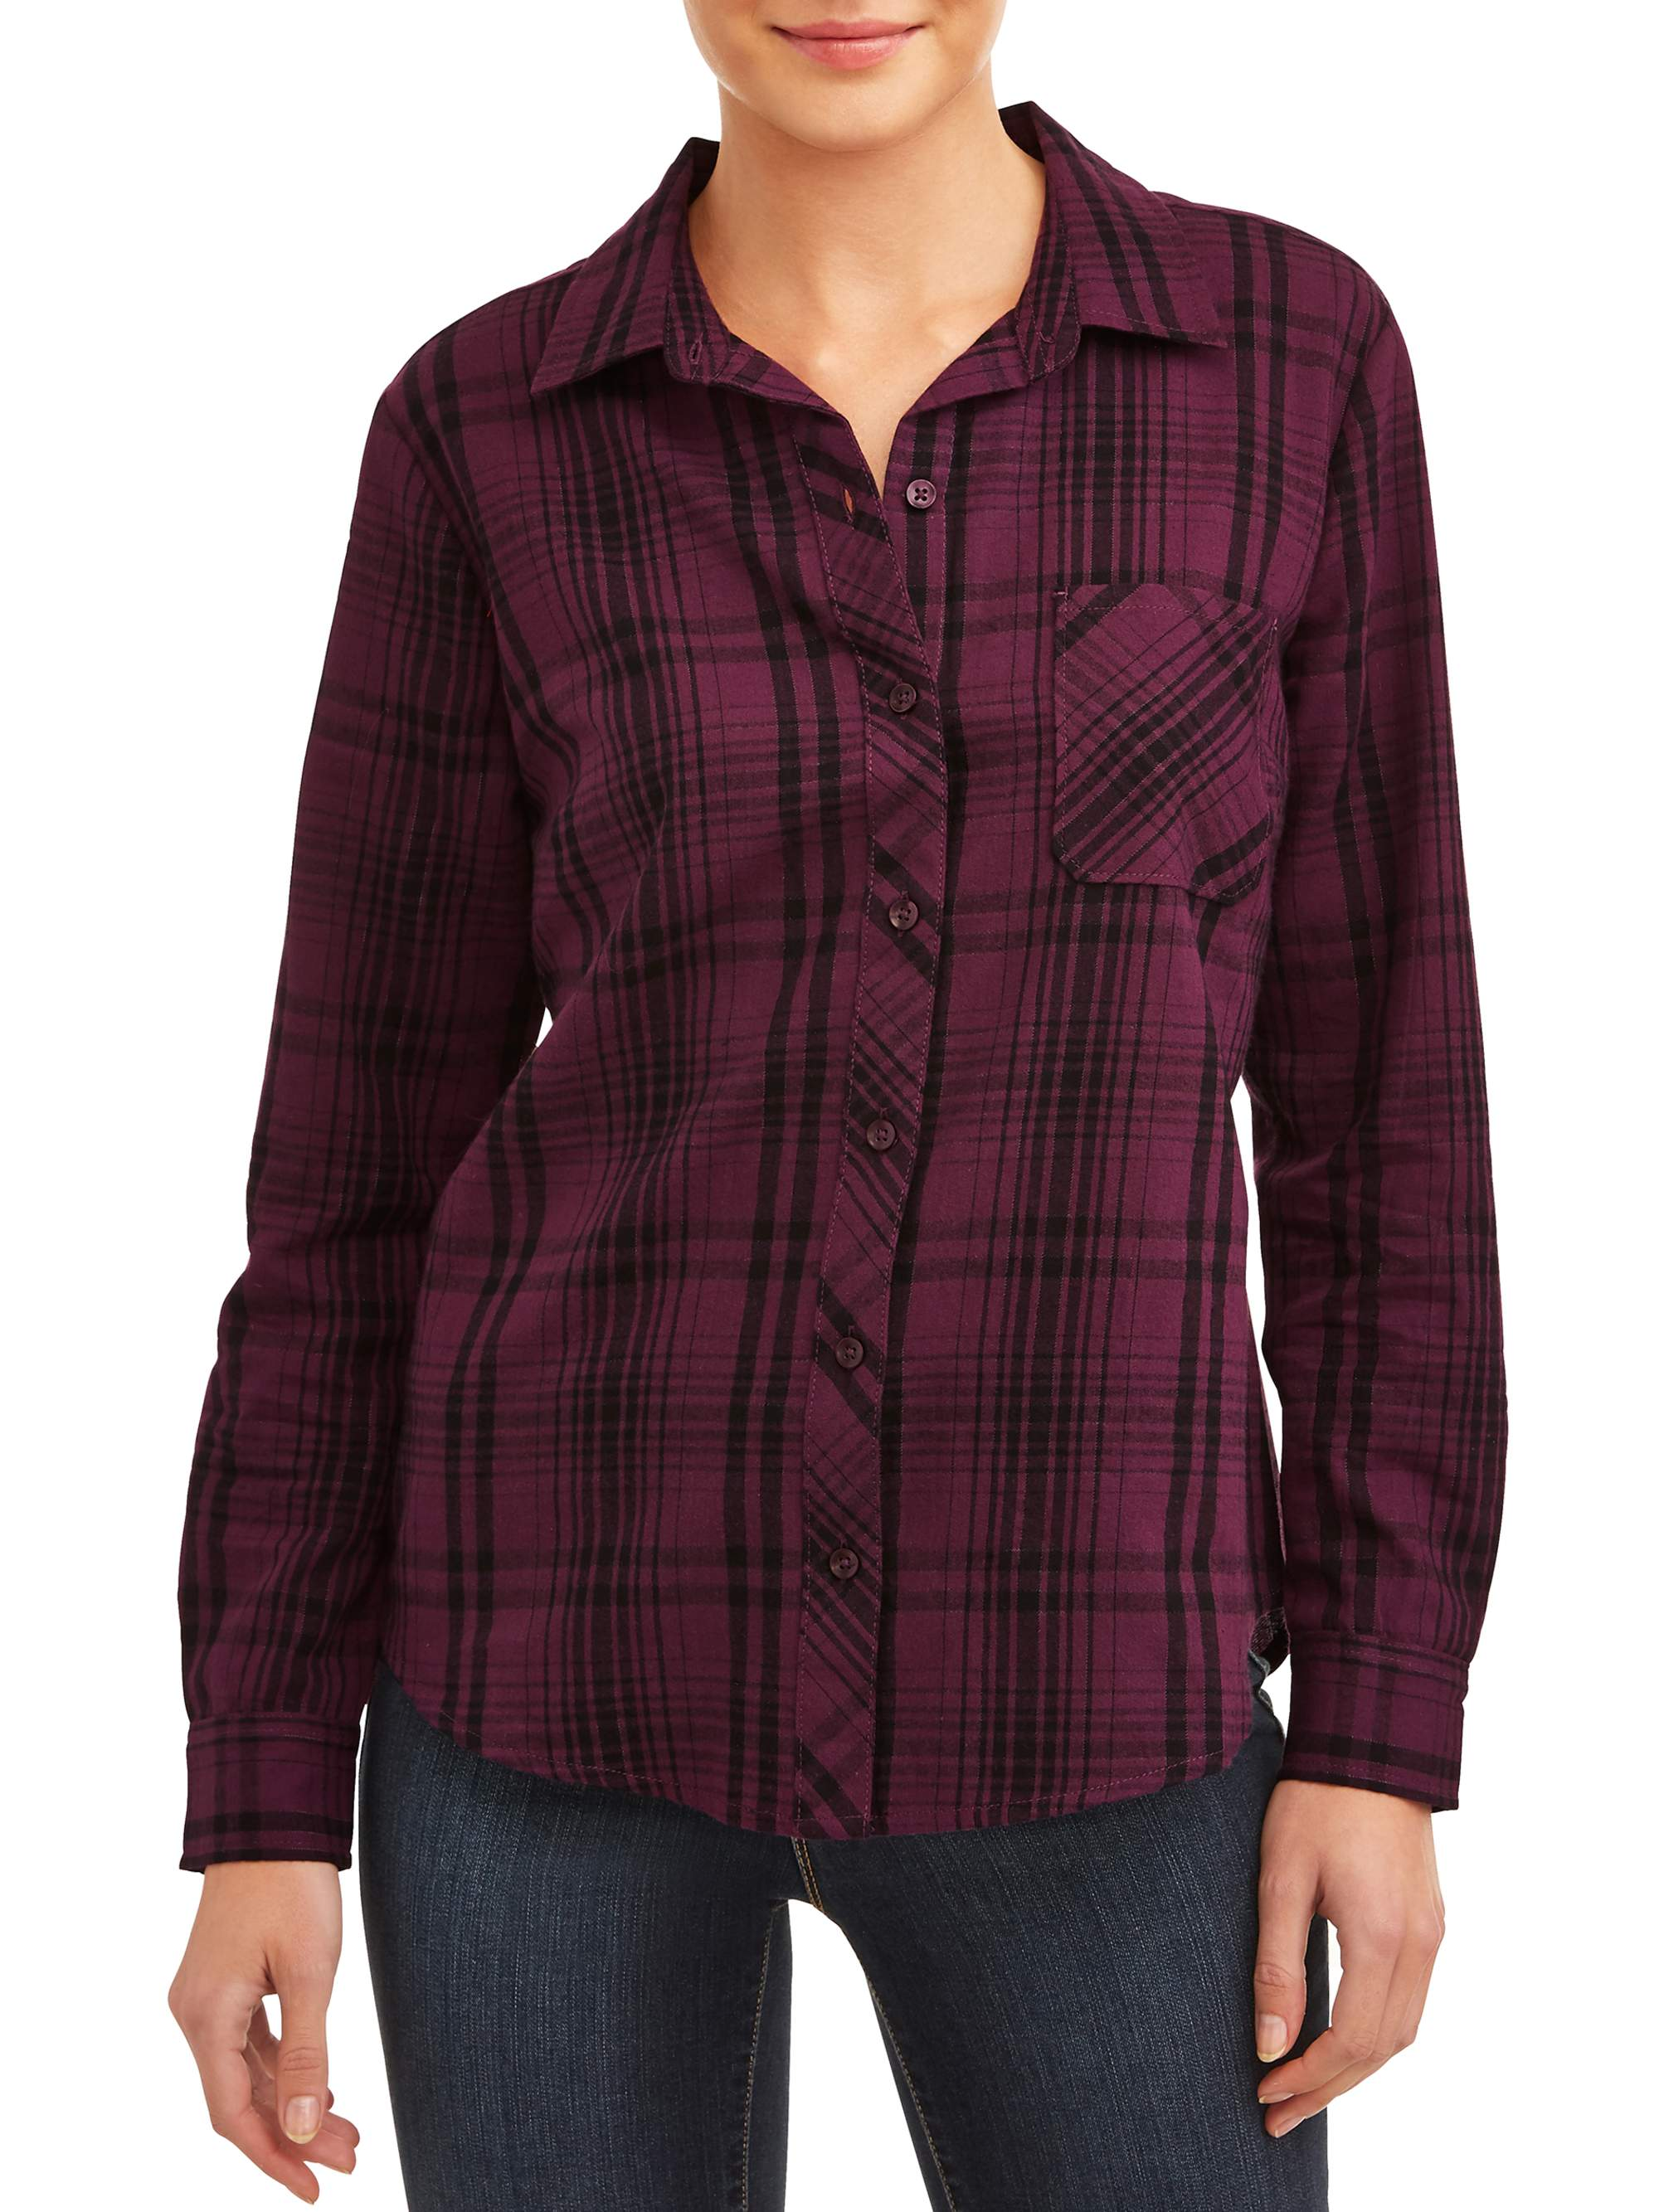 TIME /& TRU Women/'s Red Plaid Shirt with rolled sleeve cuffs Size XL fits 16 18